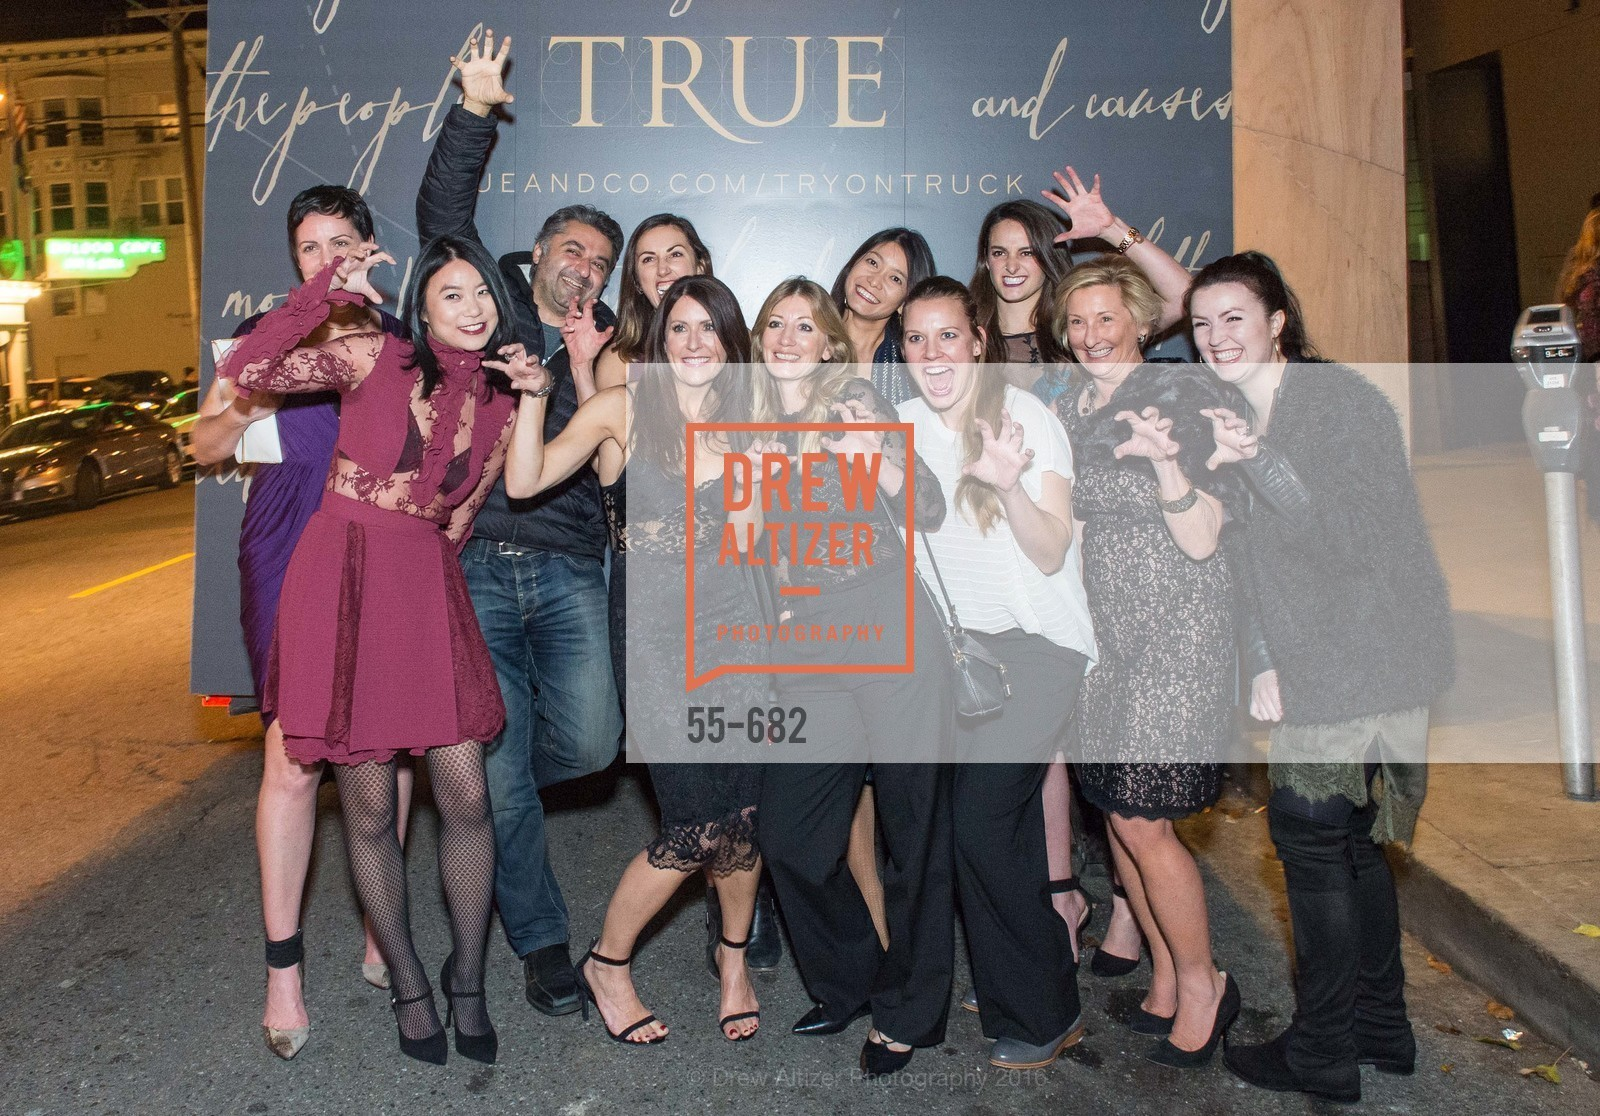 True And Co Group Photo, Photo #55-682